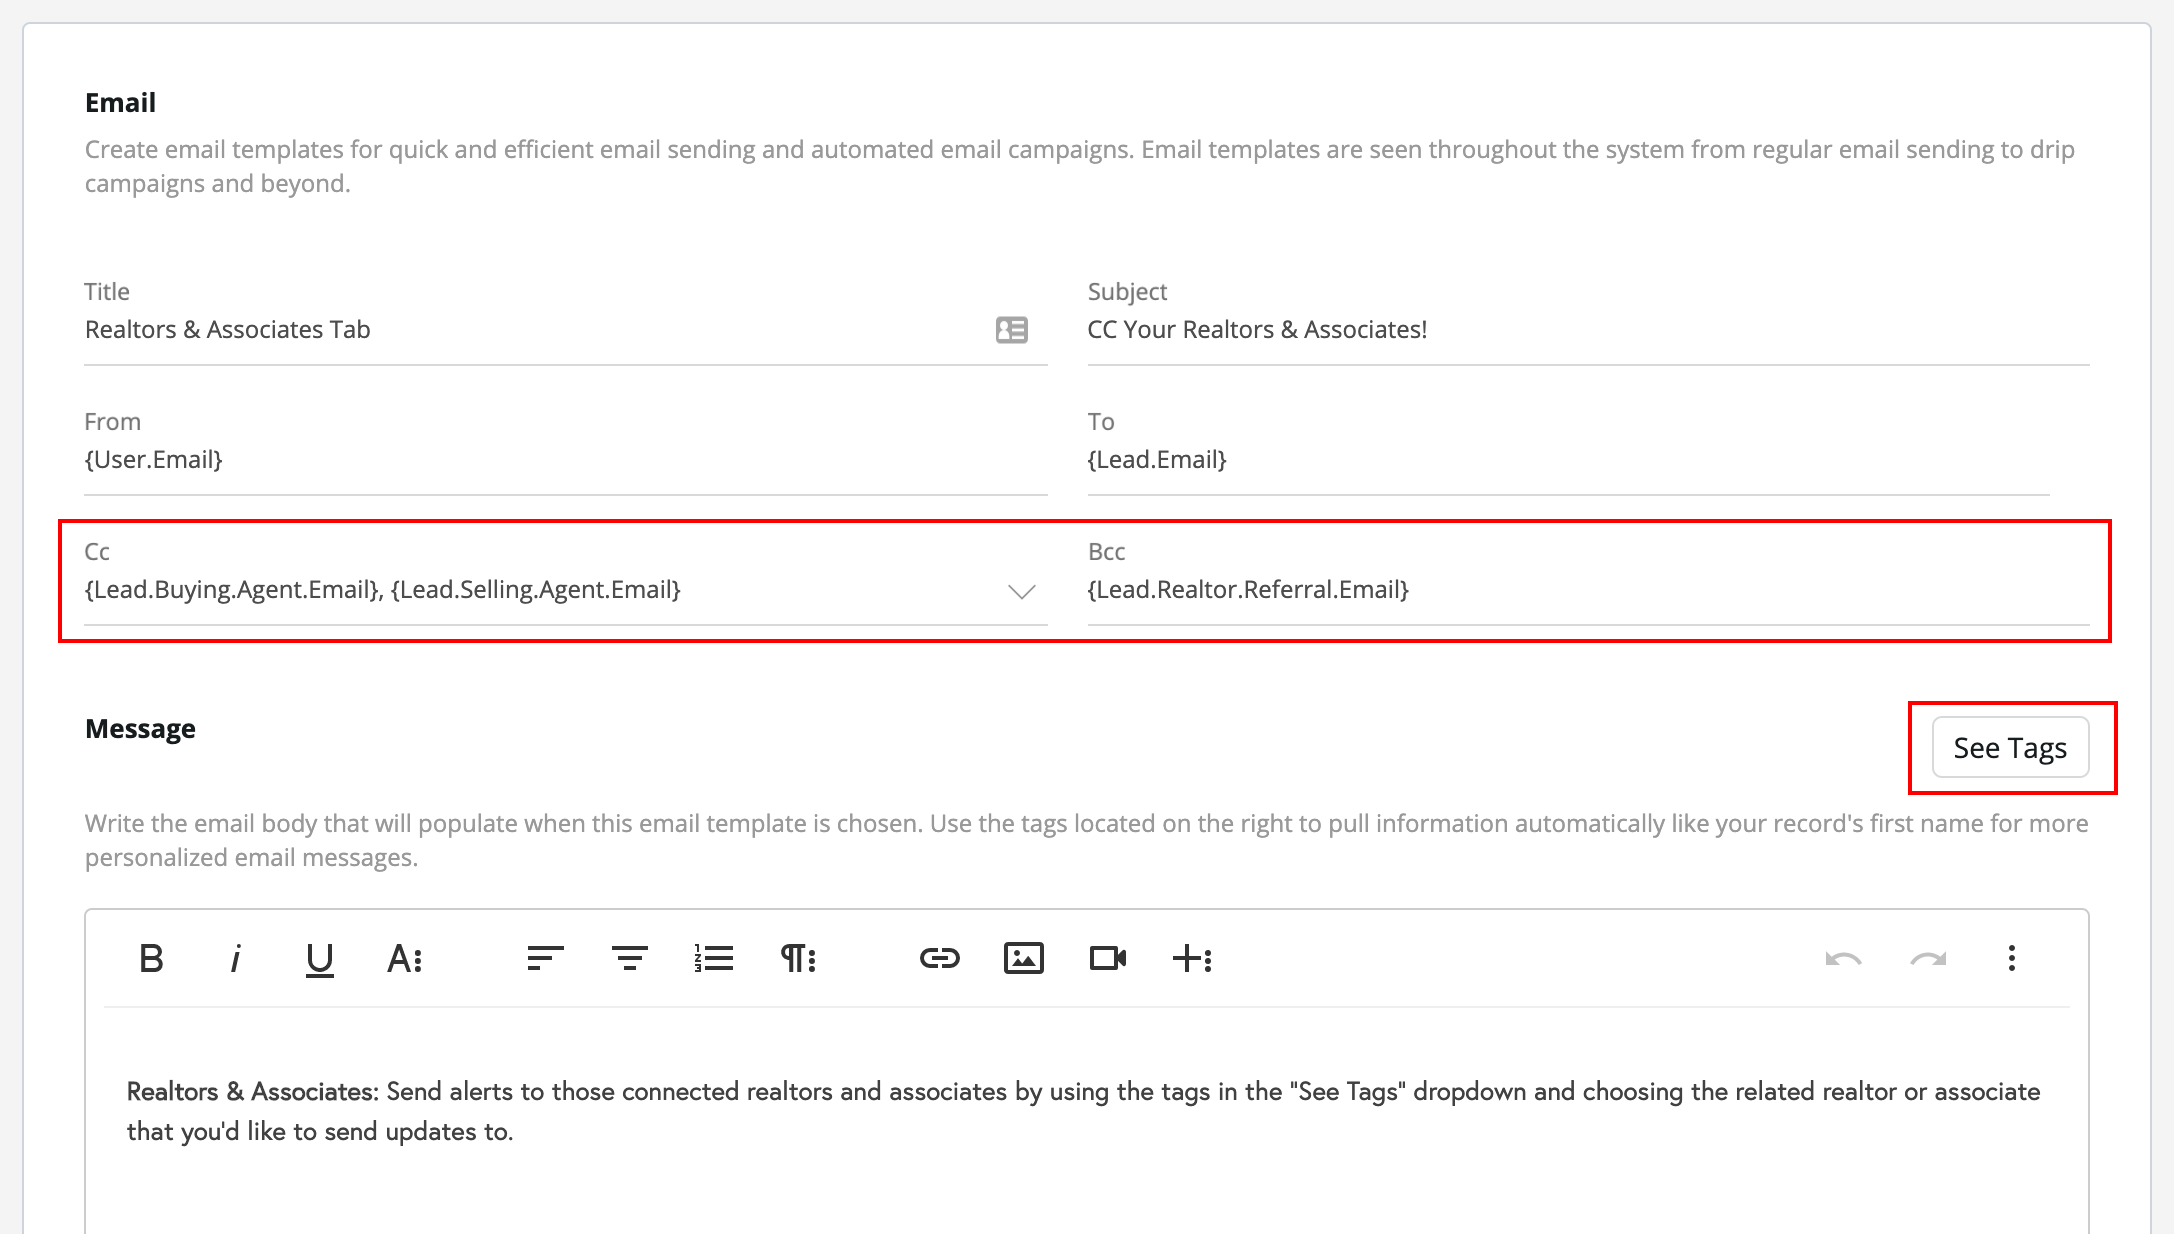 """Realtors & Associates:  Send alerts to those connected realtors and associates by using the tags in the """"See Tags"""" dropdown and choosing the related realtor or associate that you'd like to send updates to."""